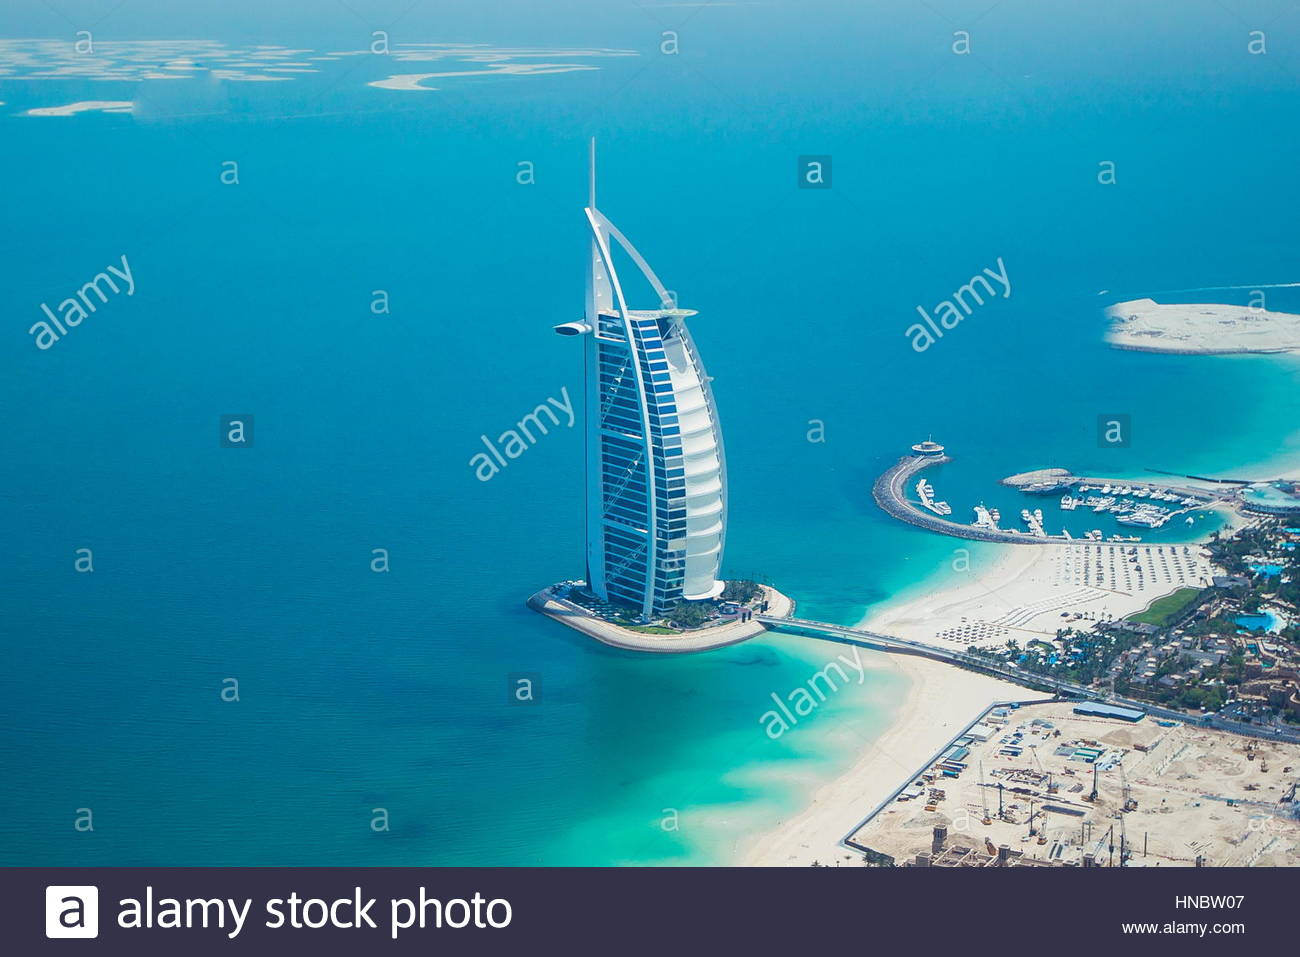 An aerial view of the Burj Al Arab hotel in the Persian Gulf. - Stock Image